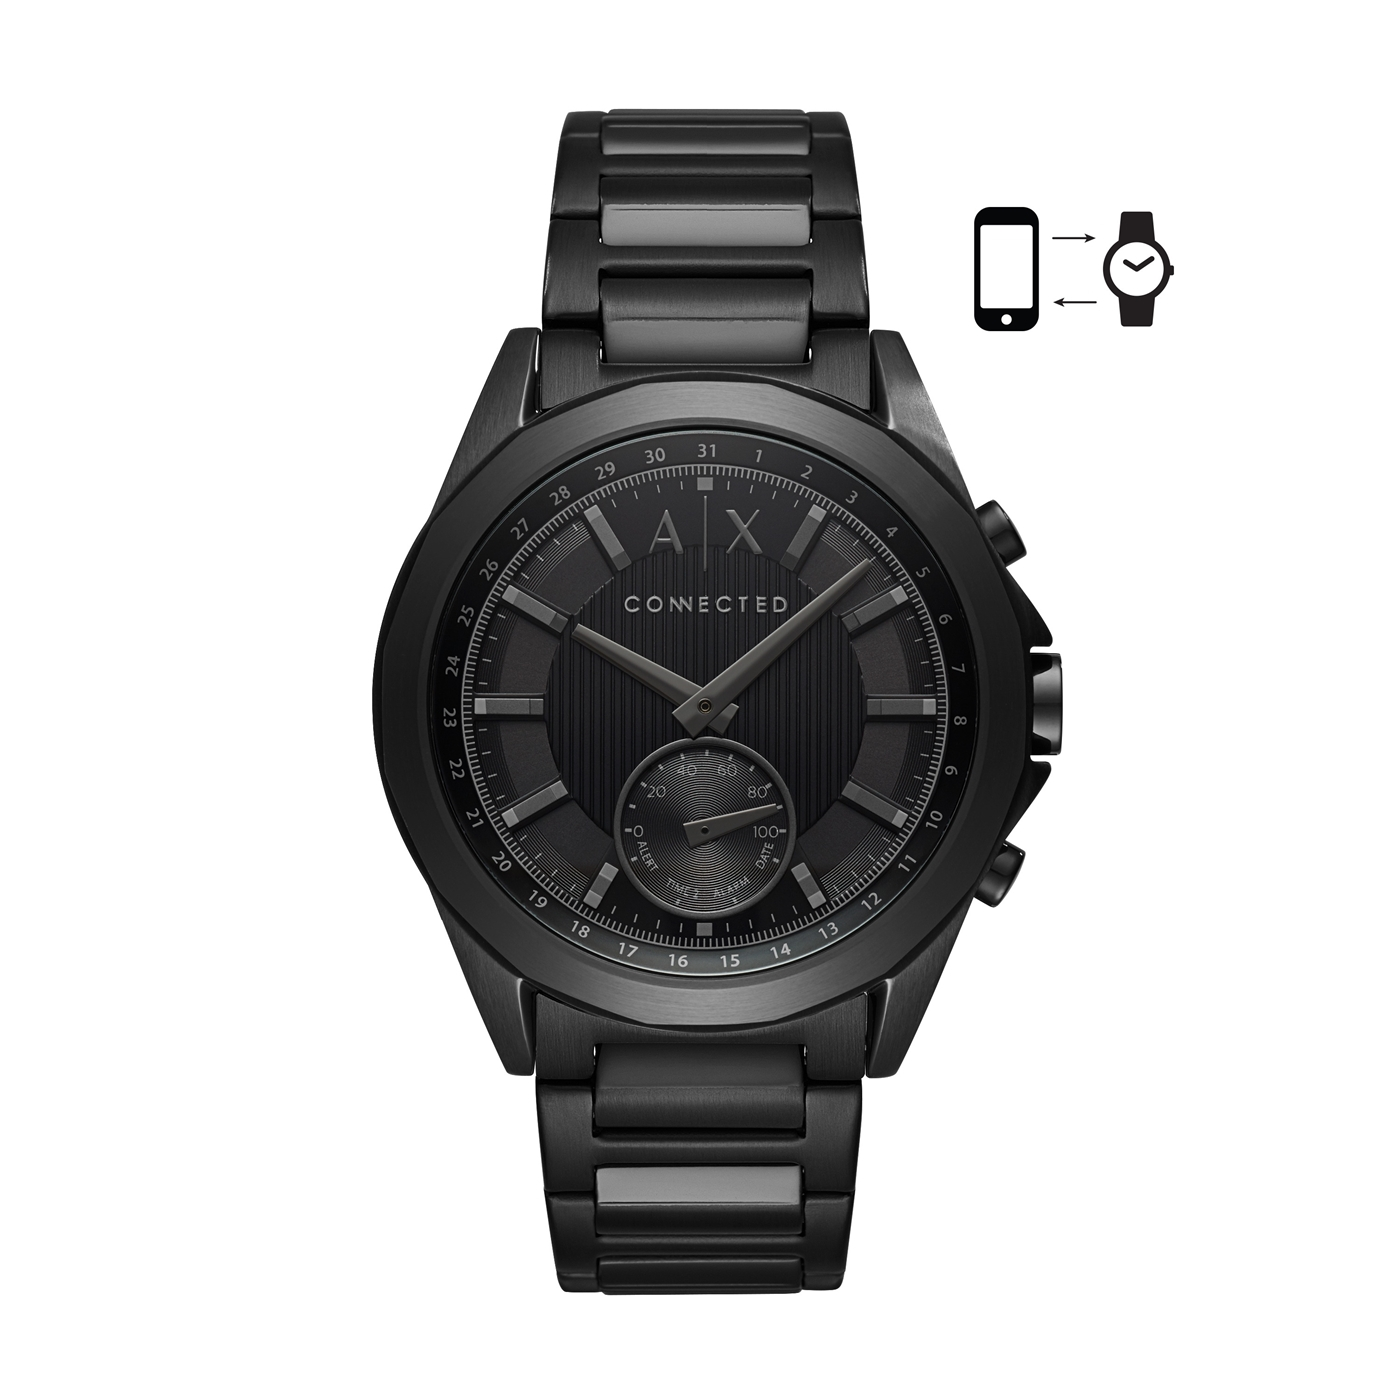 Immagine di Armani Exchange Connected watch AXT1007